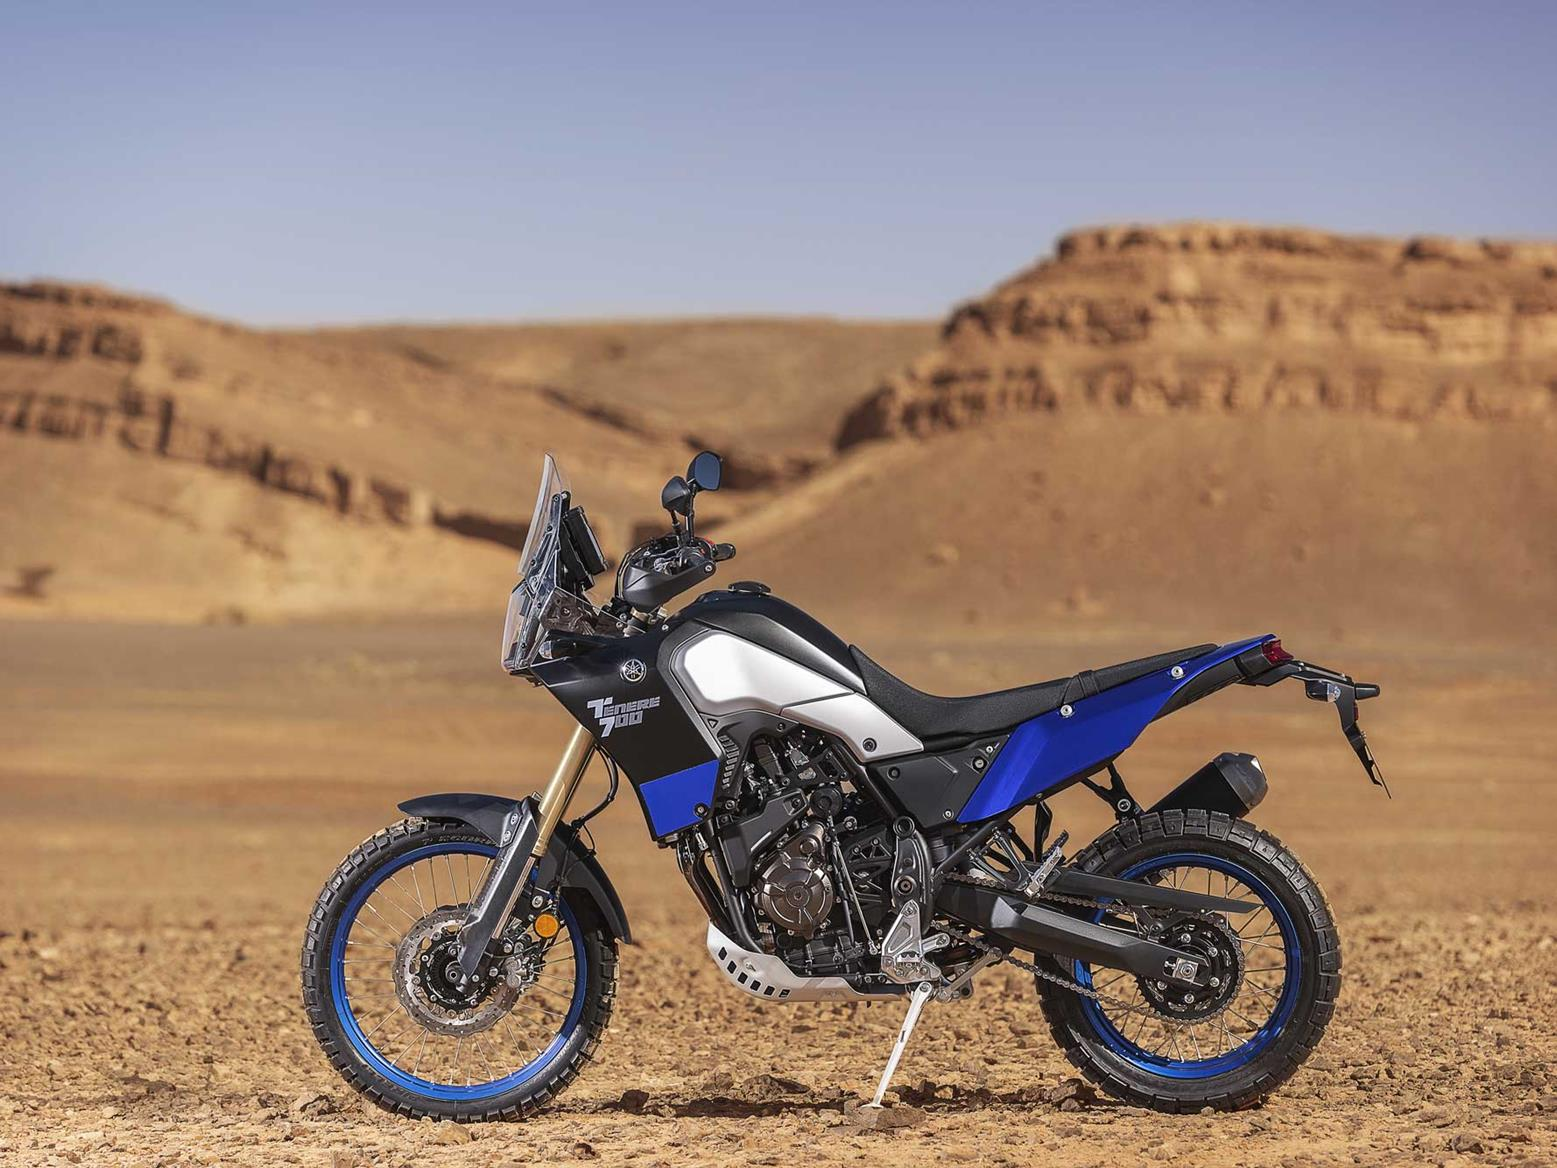 The Yamaha Teneré 700 looks the business